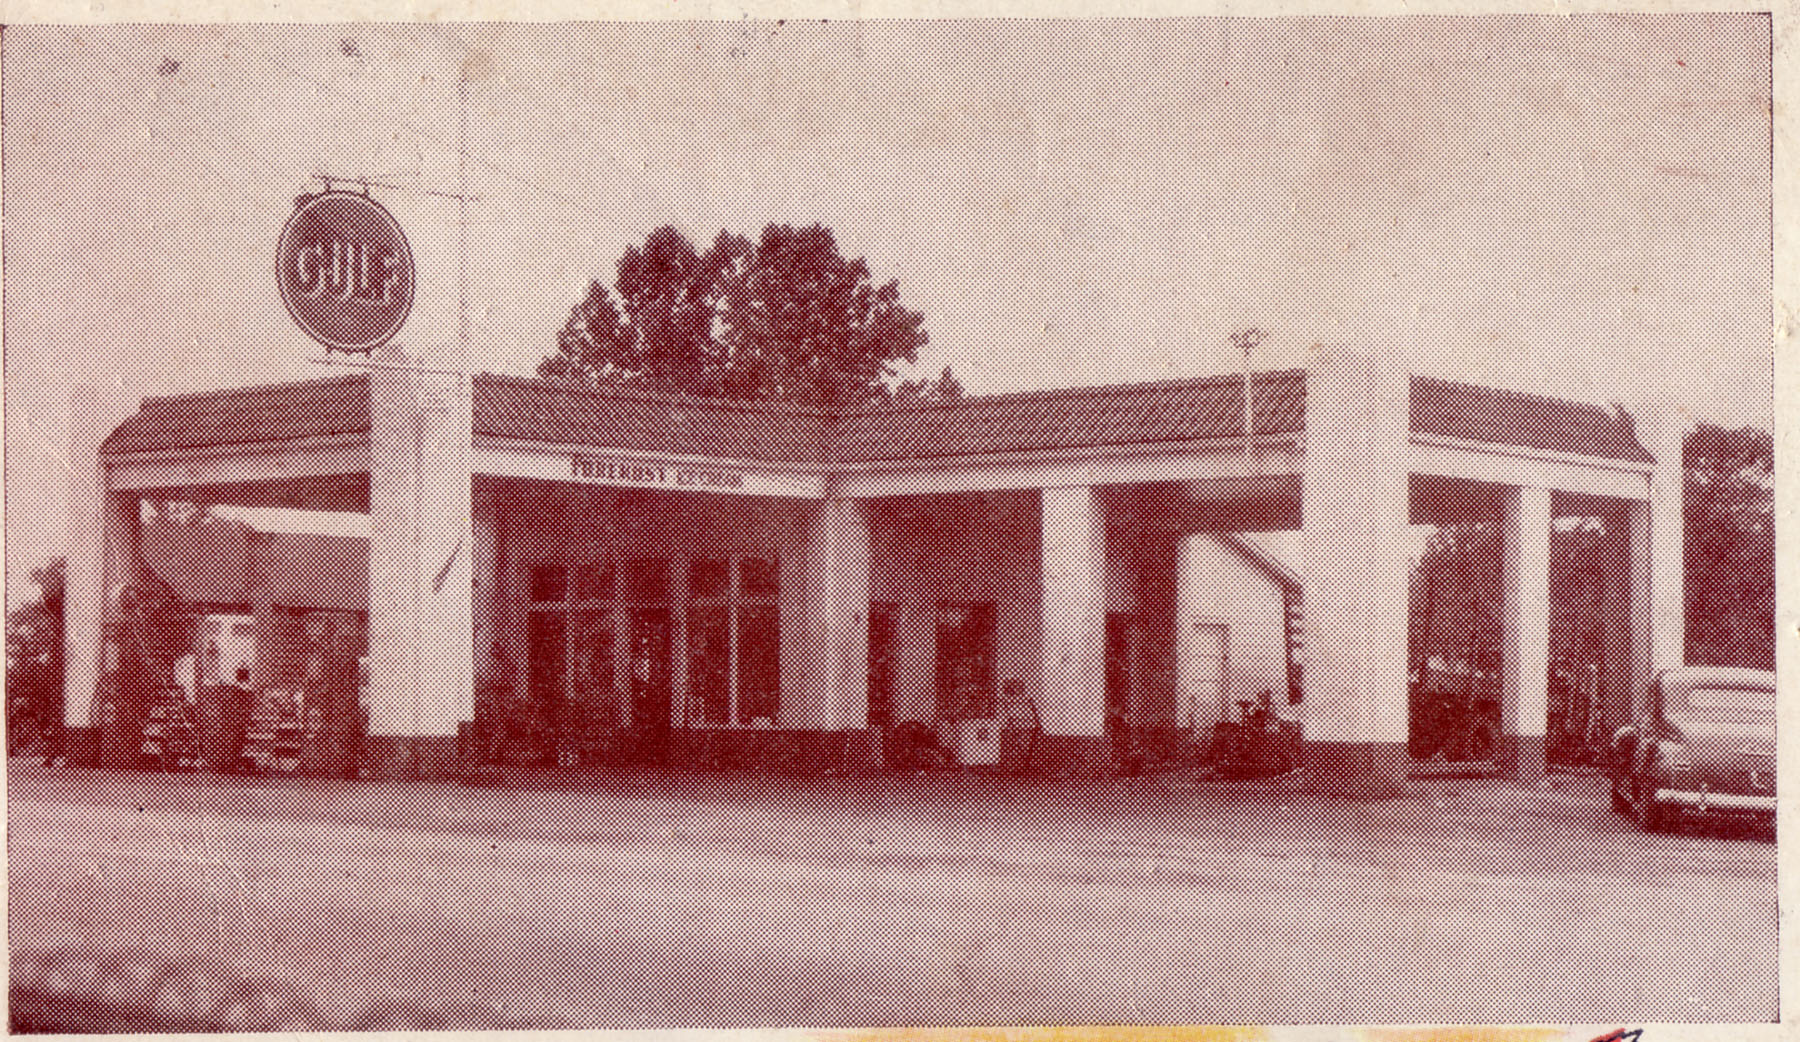 JR Creech Gulf Station.  Burned in the late 1960's.  Located at the present site of Sharpe's BP on Main St.